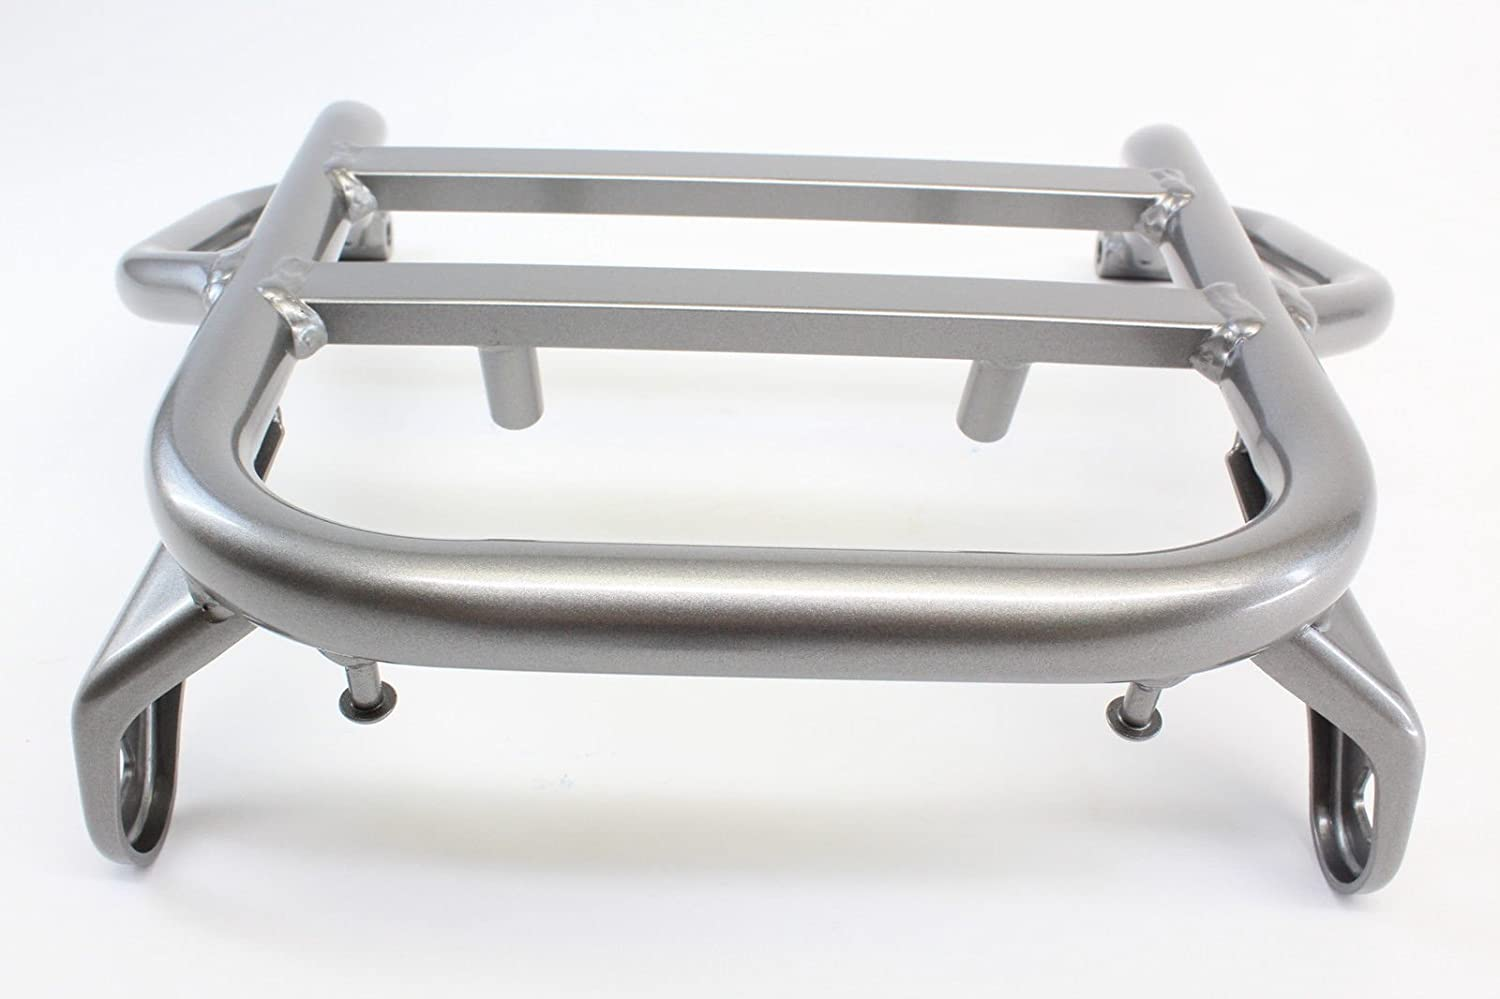 Suzuki 46300-32821-20H Rear Rack